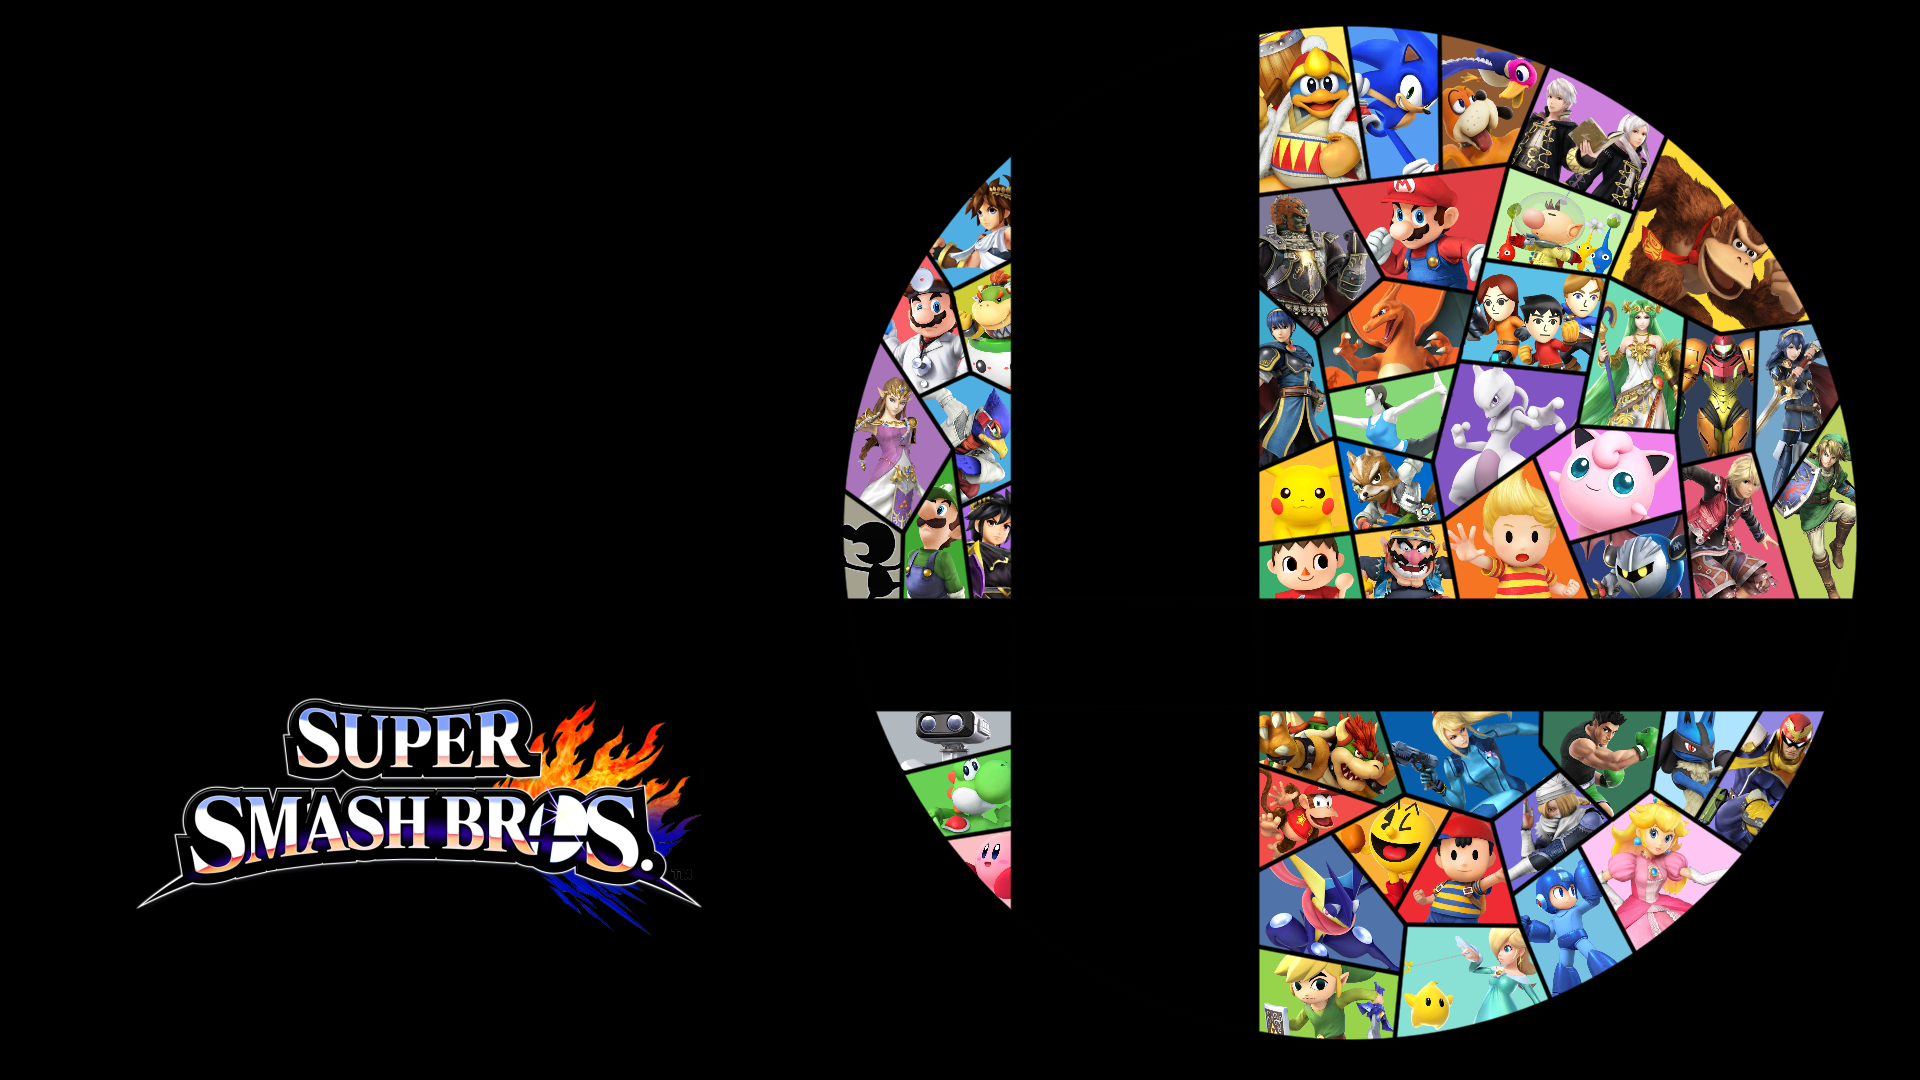 Free Download Smash Bros Wallpaper 1920x1080 For Your Desktop